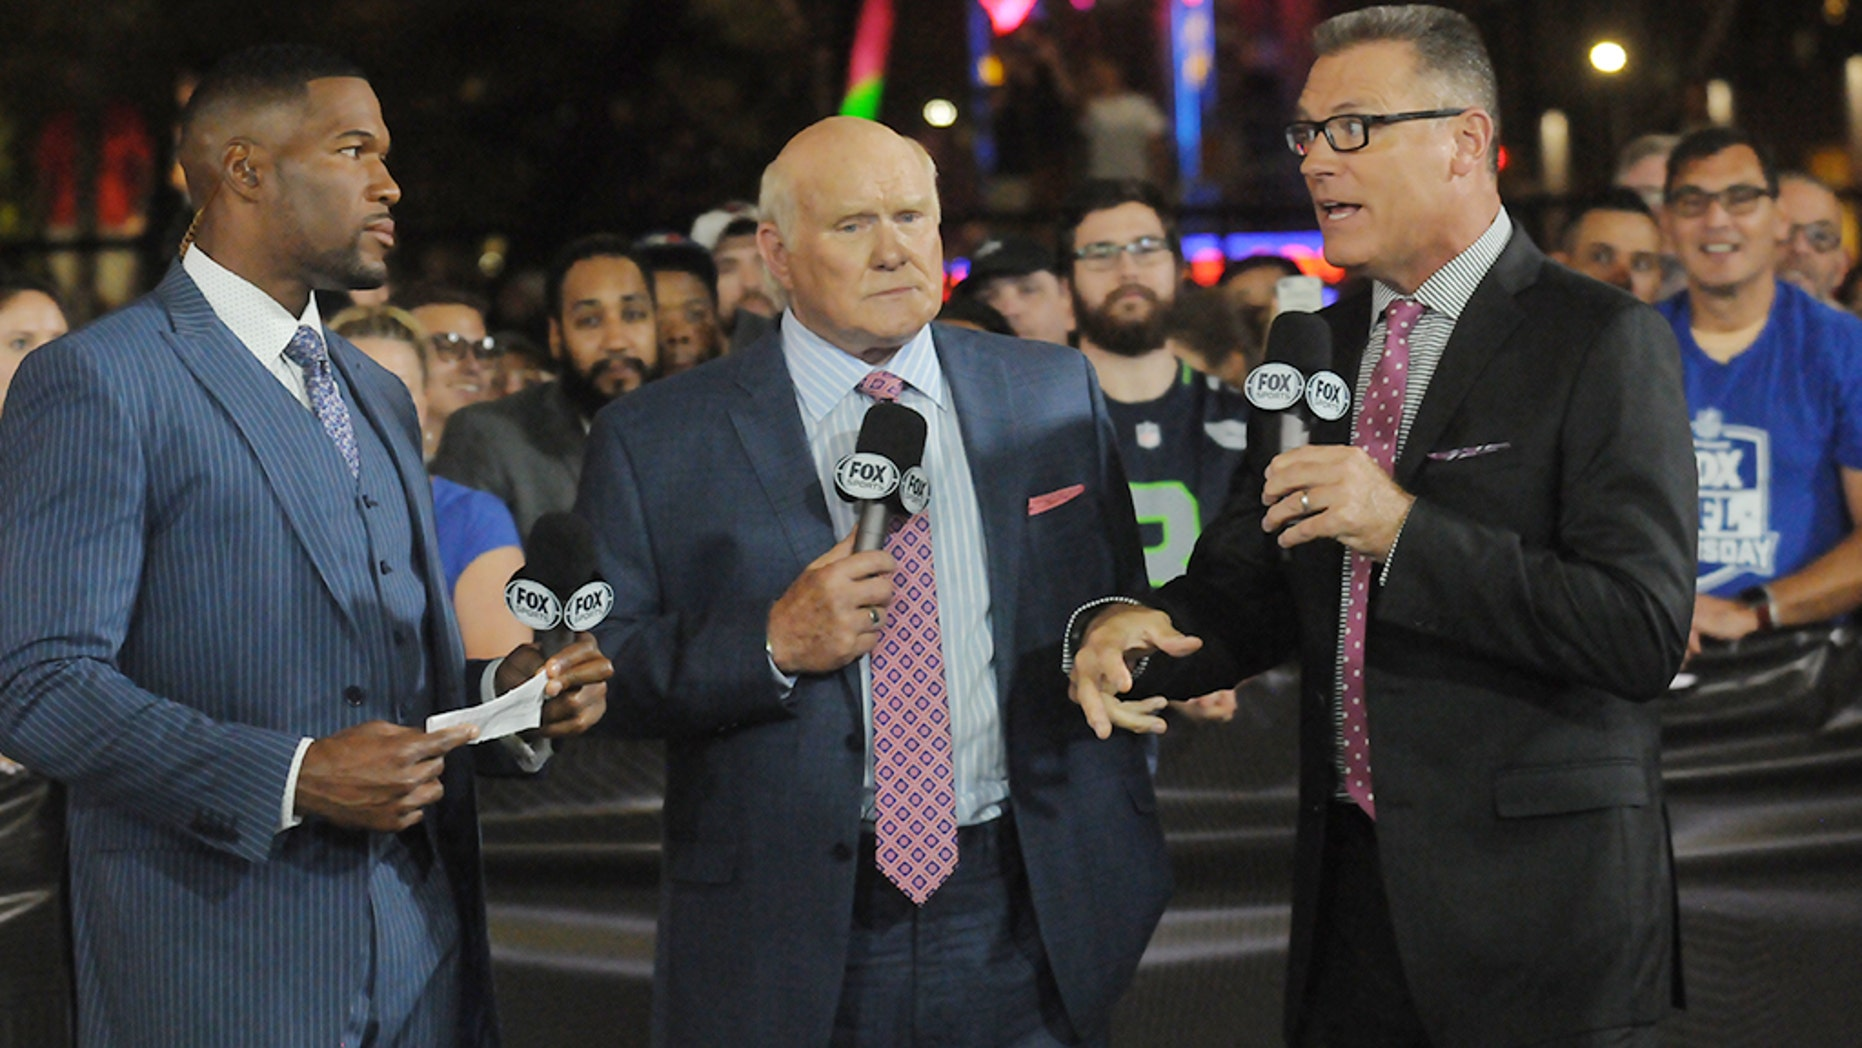 Ratings hit all-time for Fox's Thursday Night Soccer after Saints and Cowboys soccer game.